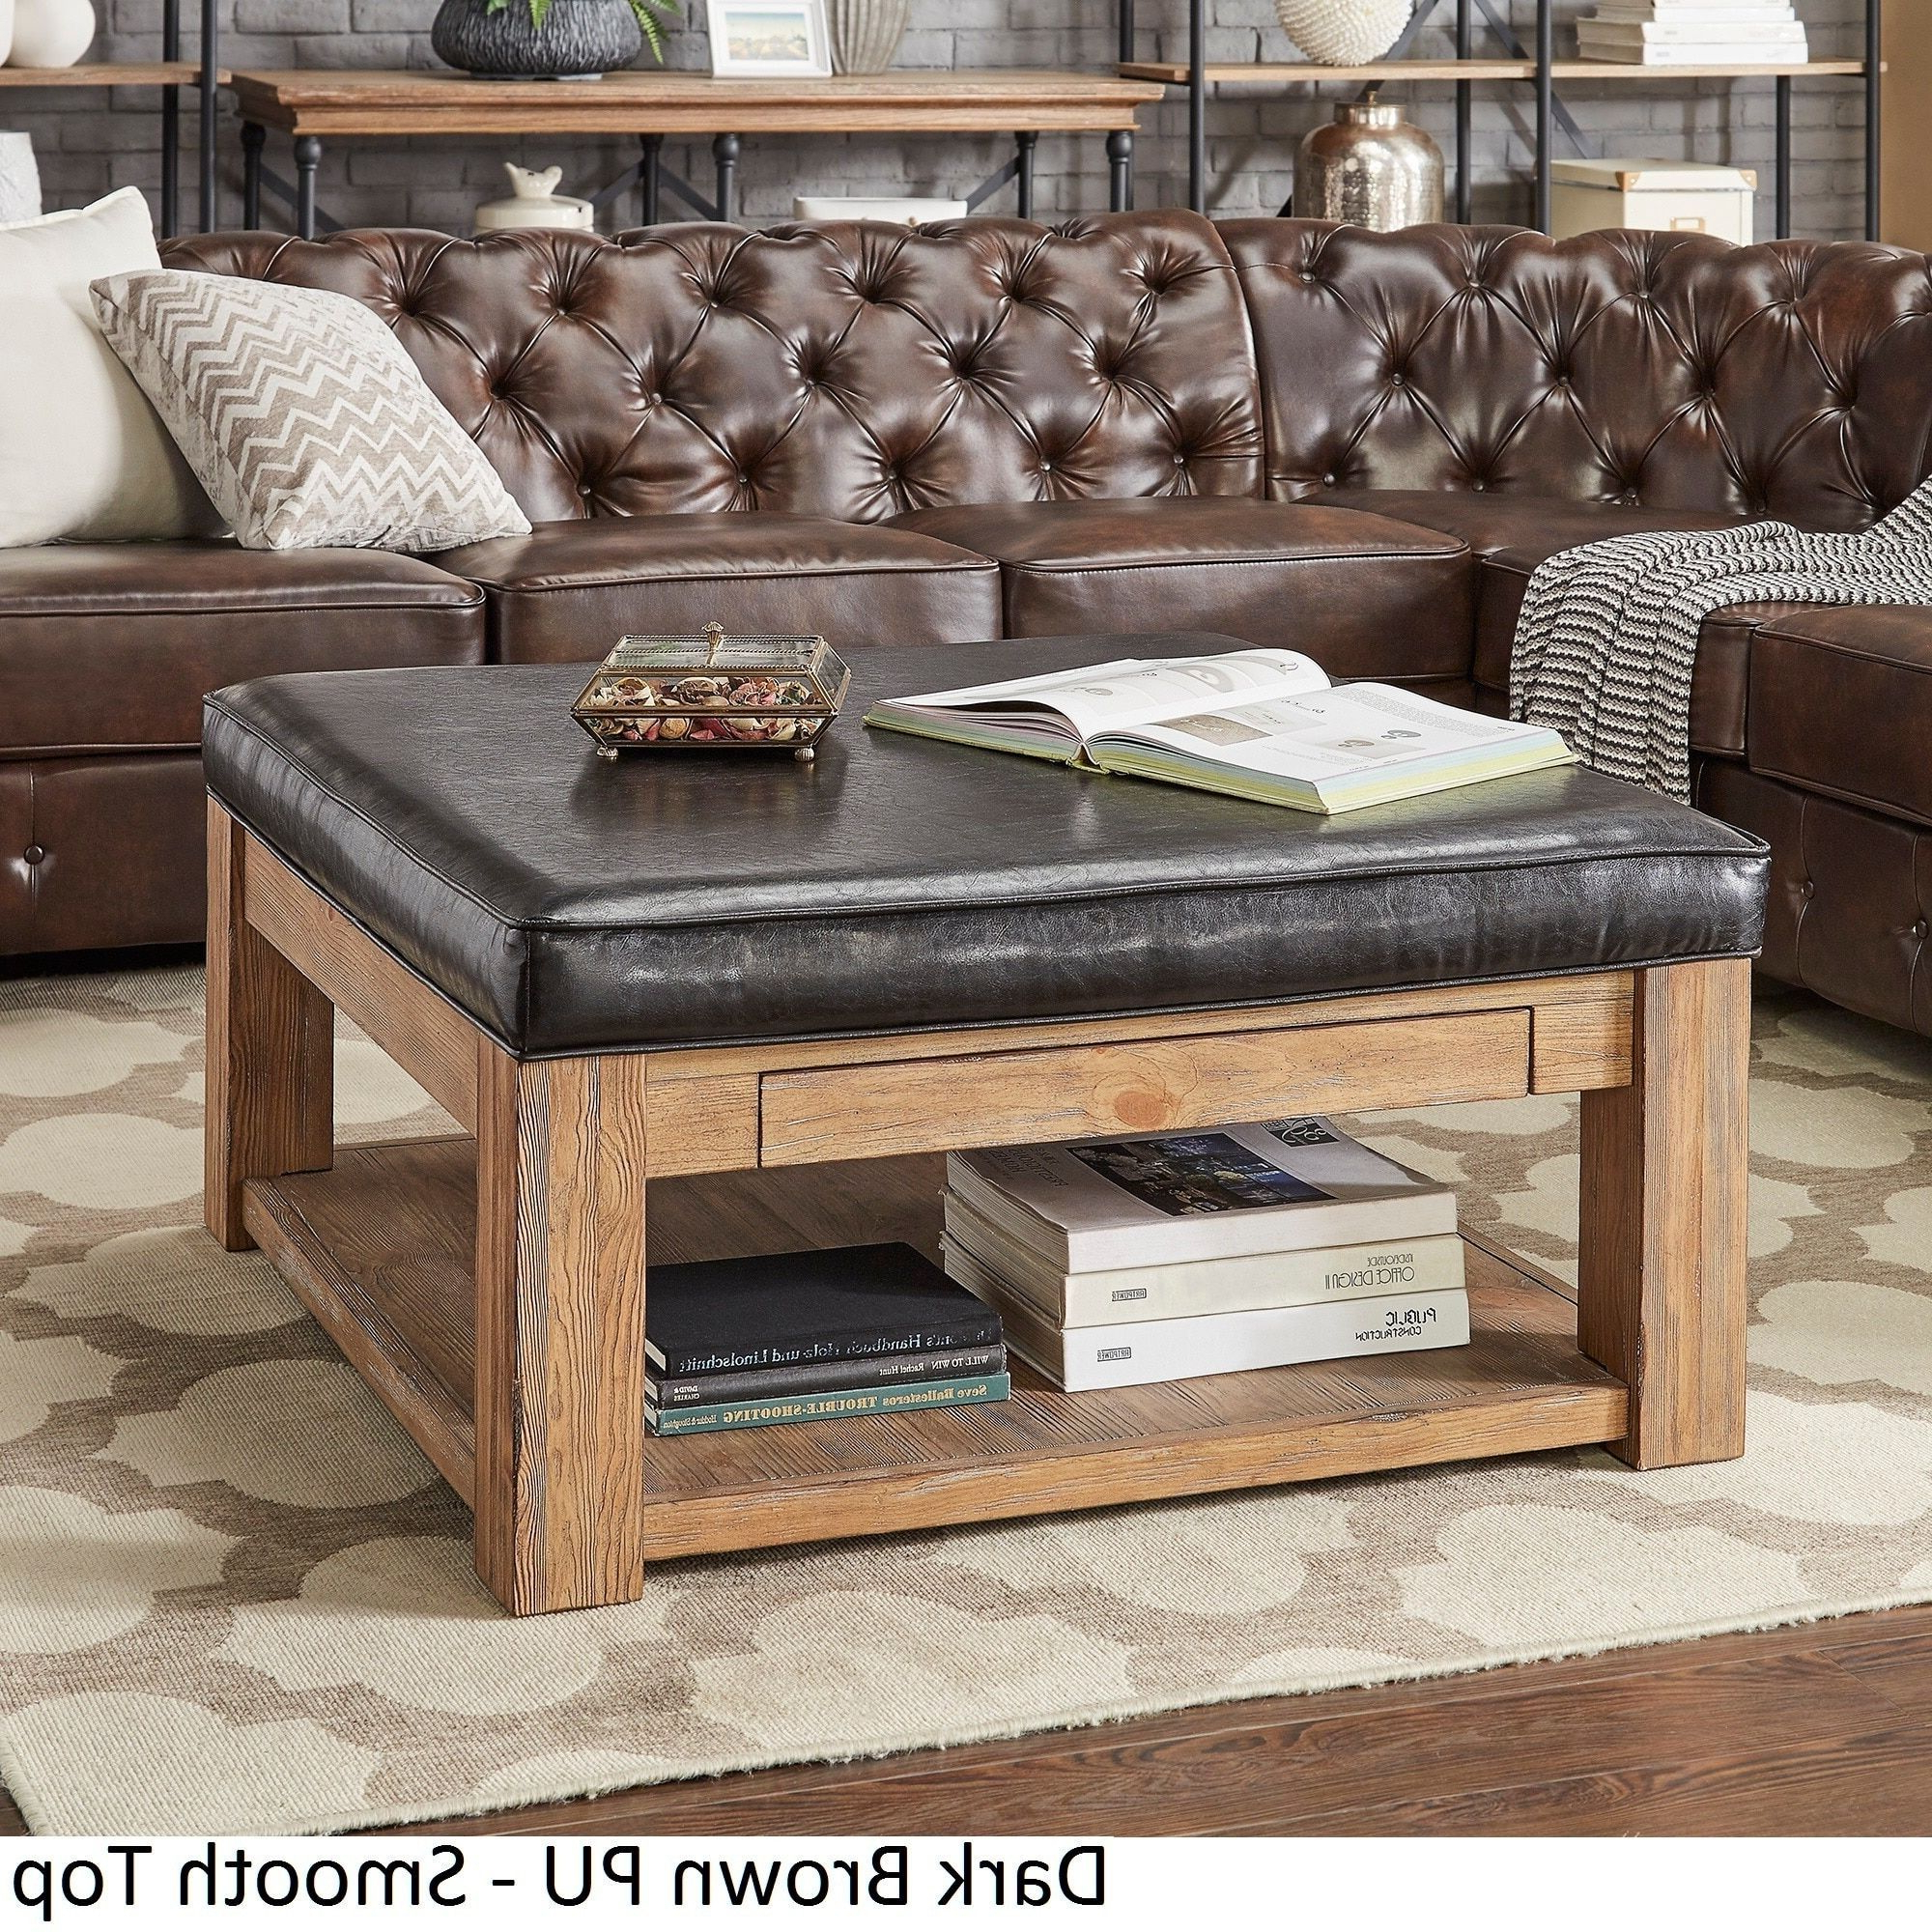 Widely Used Lennon Pine Square Storage Ottoman Coffee Tables With Regard To Lennon Pine Square Storage Ottoman Coffee Tabletribecca (View 20 of 20)